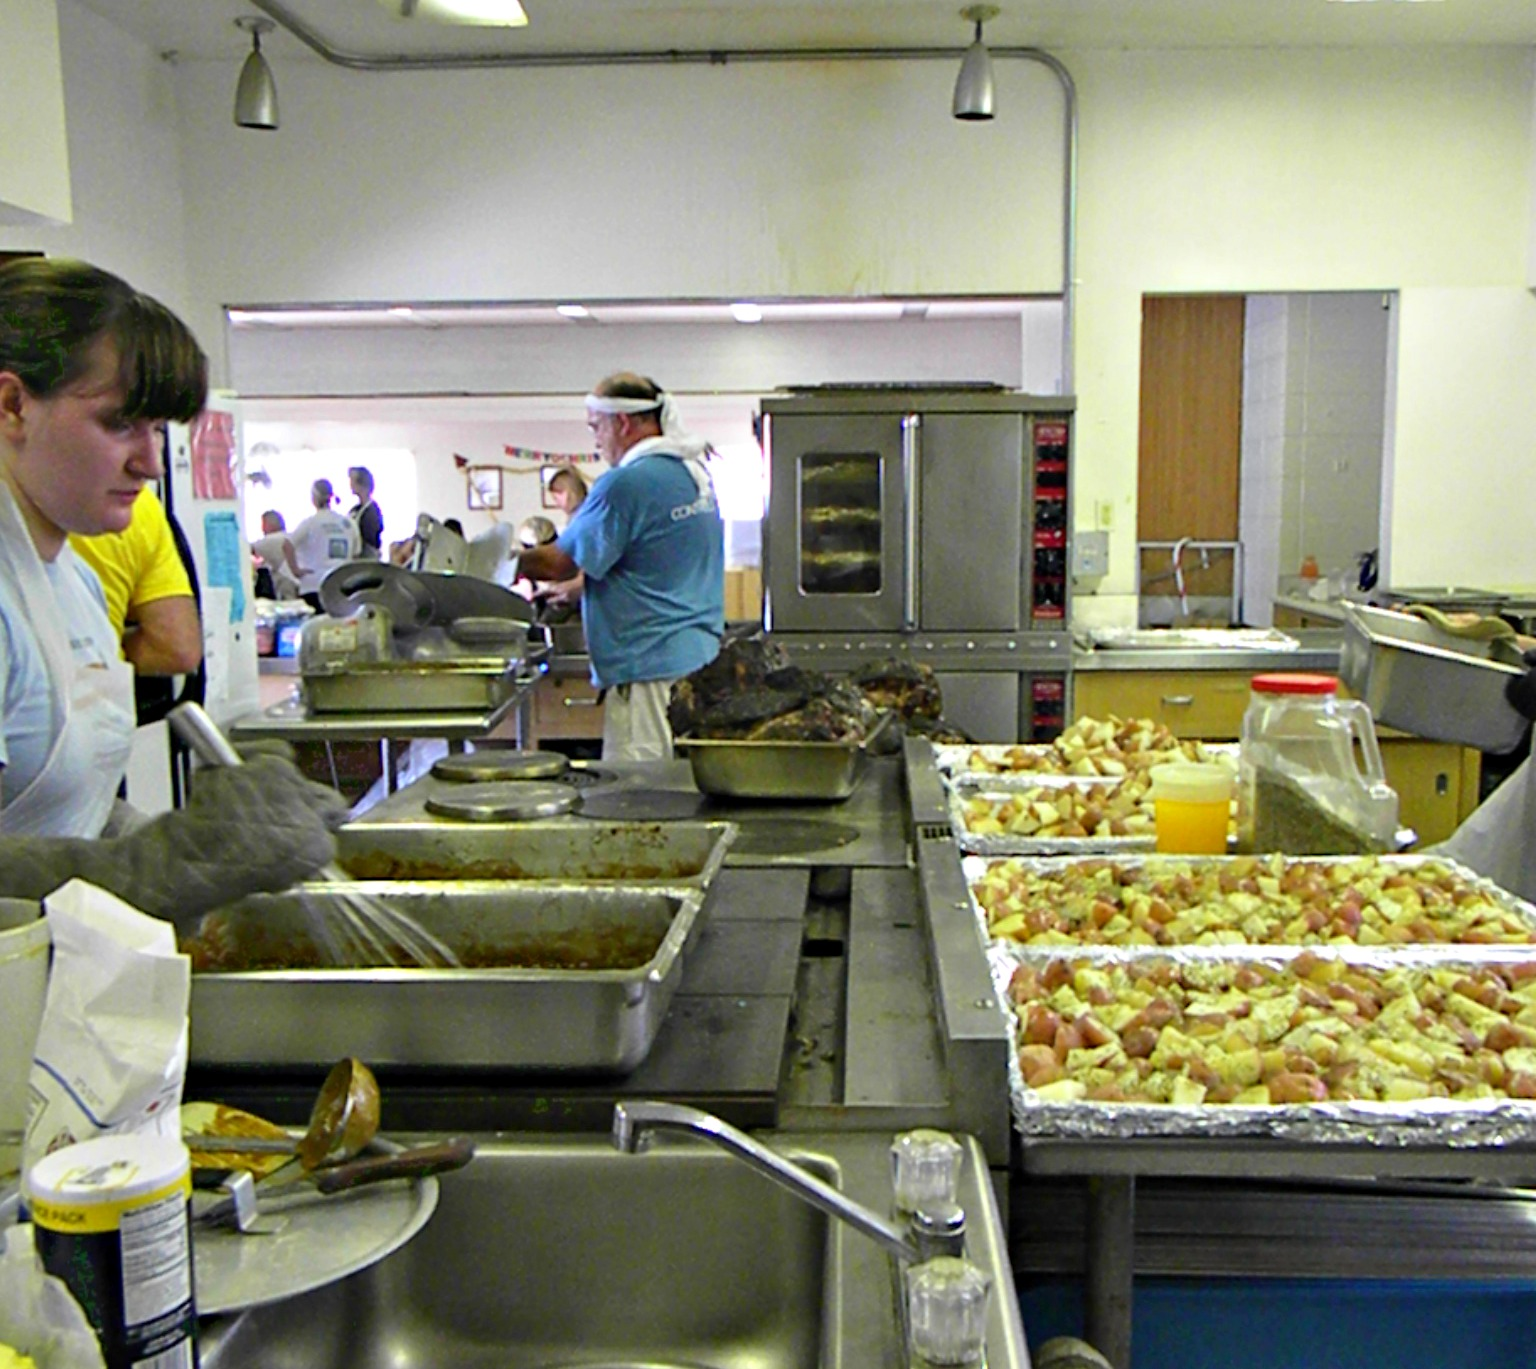 Cooks prepare over 150 lbs. of potatoes